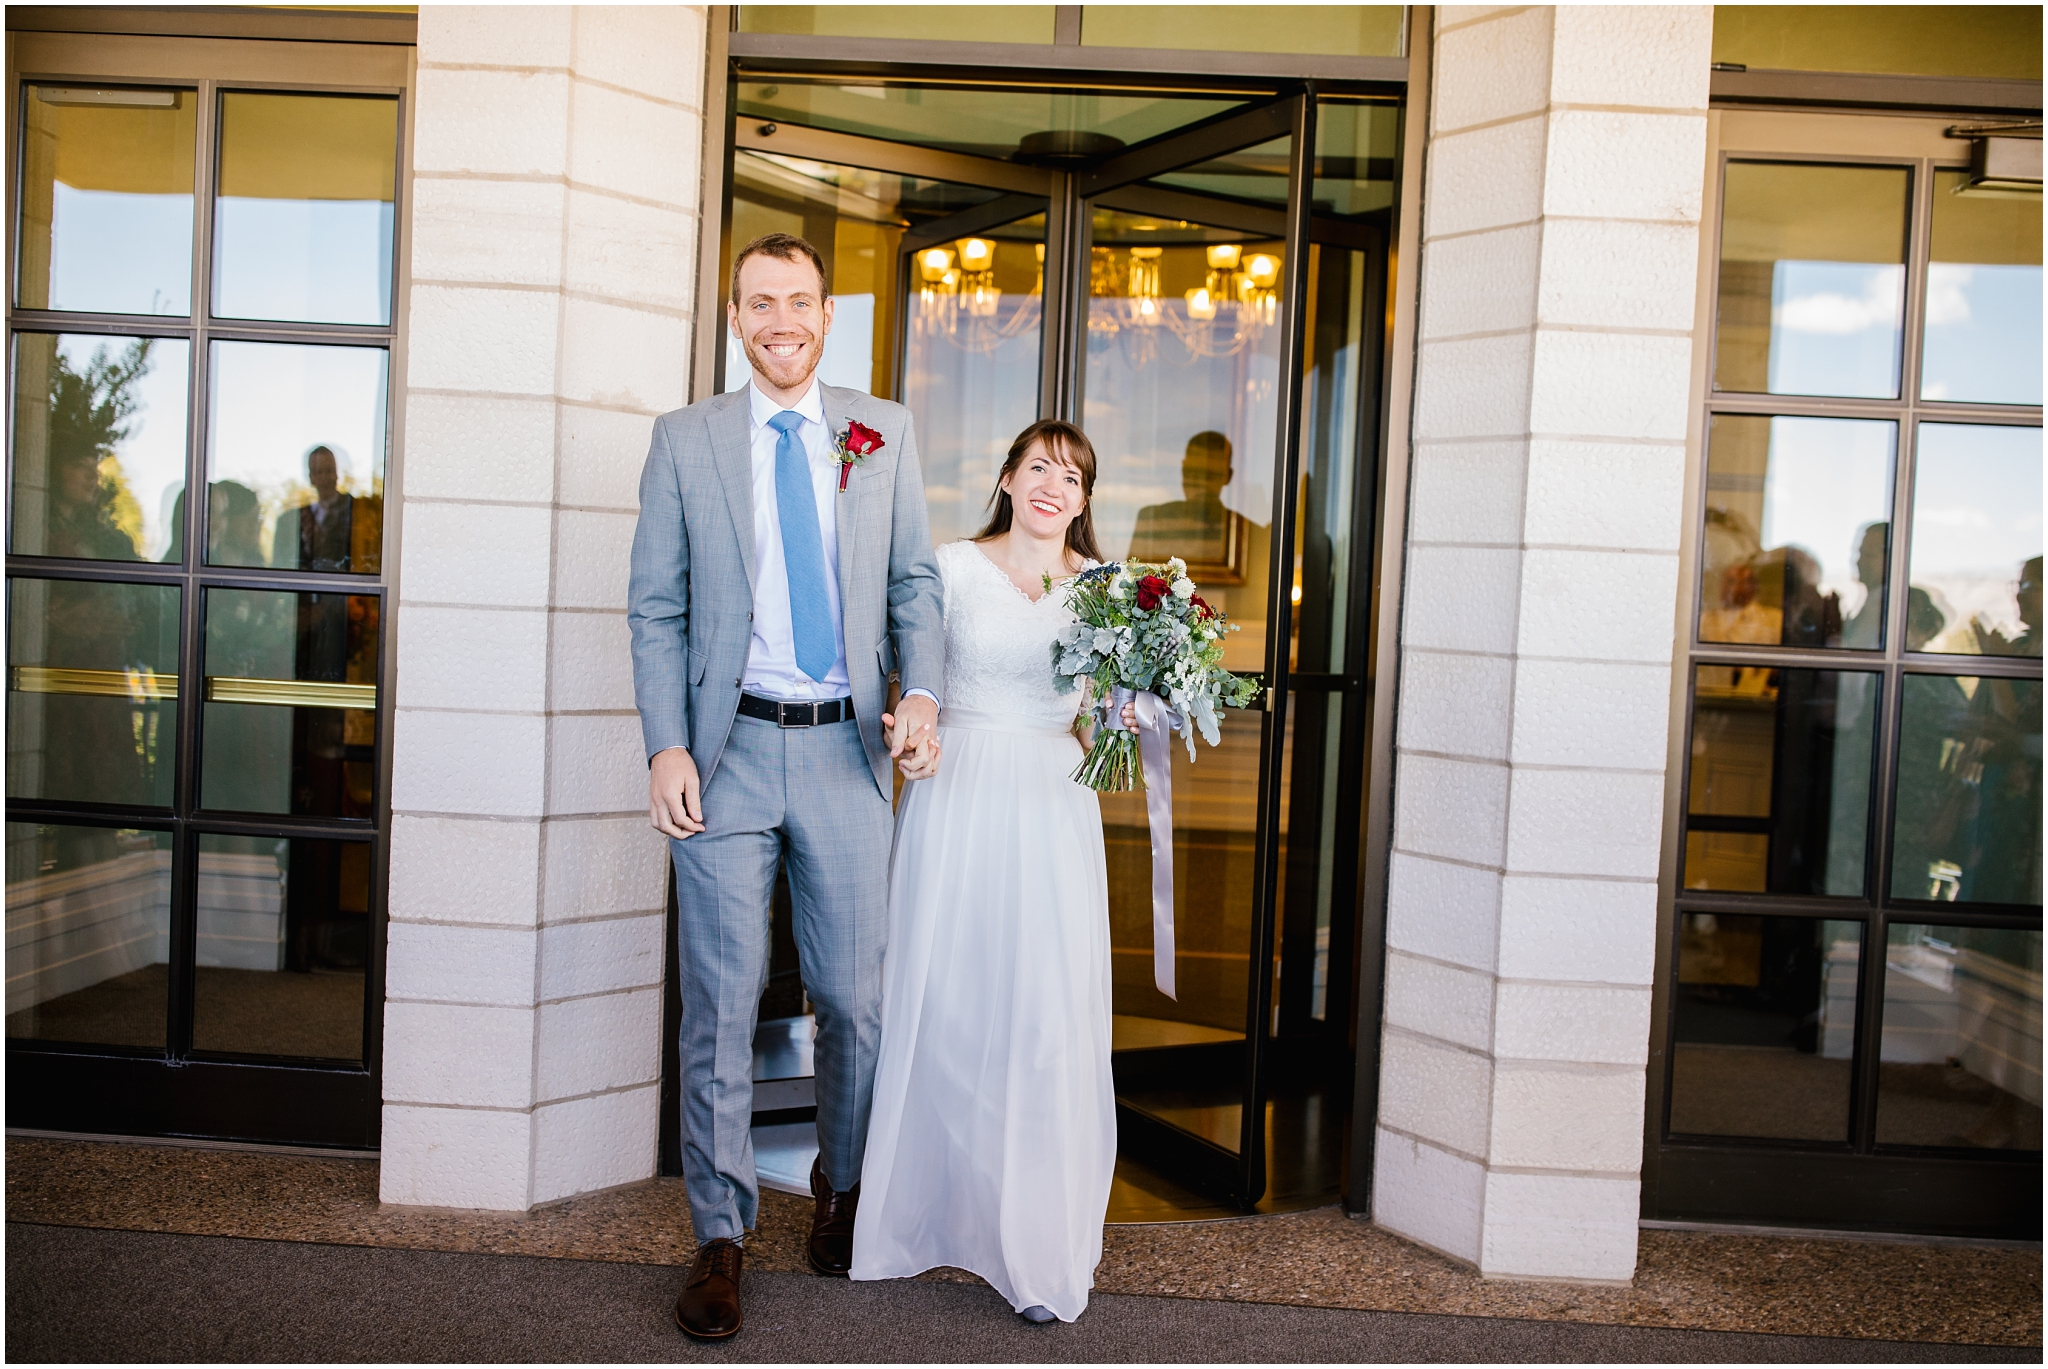 BrynneWinston-1_Lizzie-B-Imagery-Utah-Wedding-Photographer-Utah-County-Manti-Temple.jpg